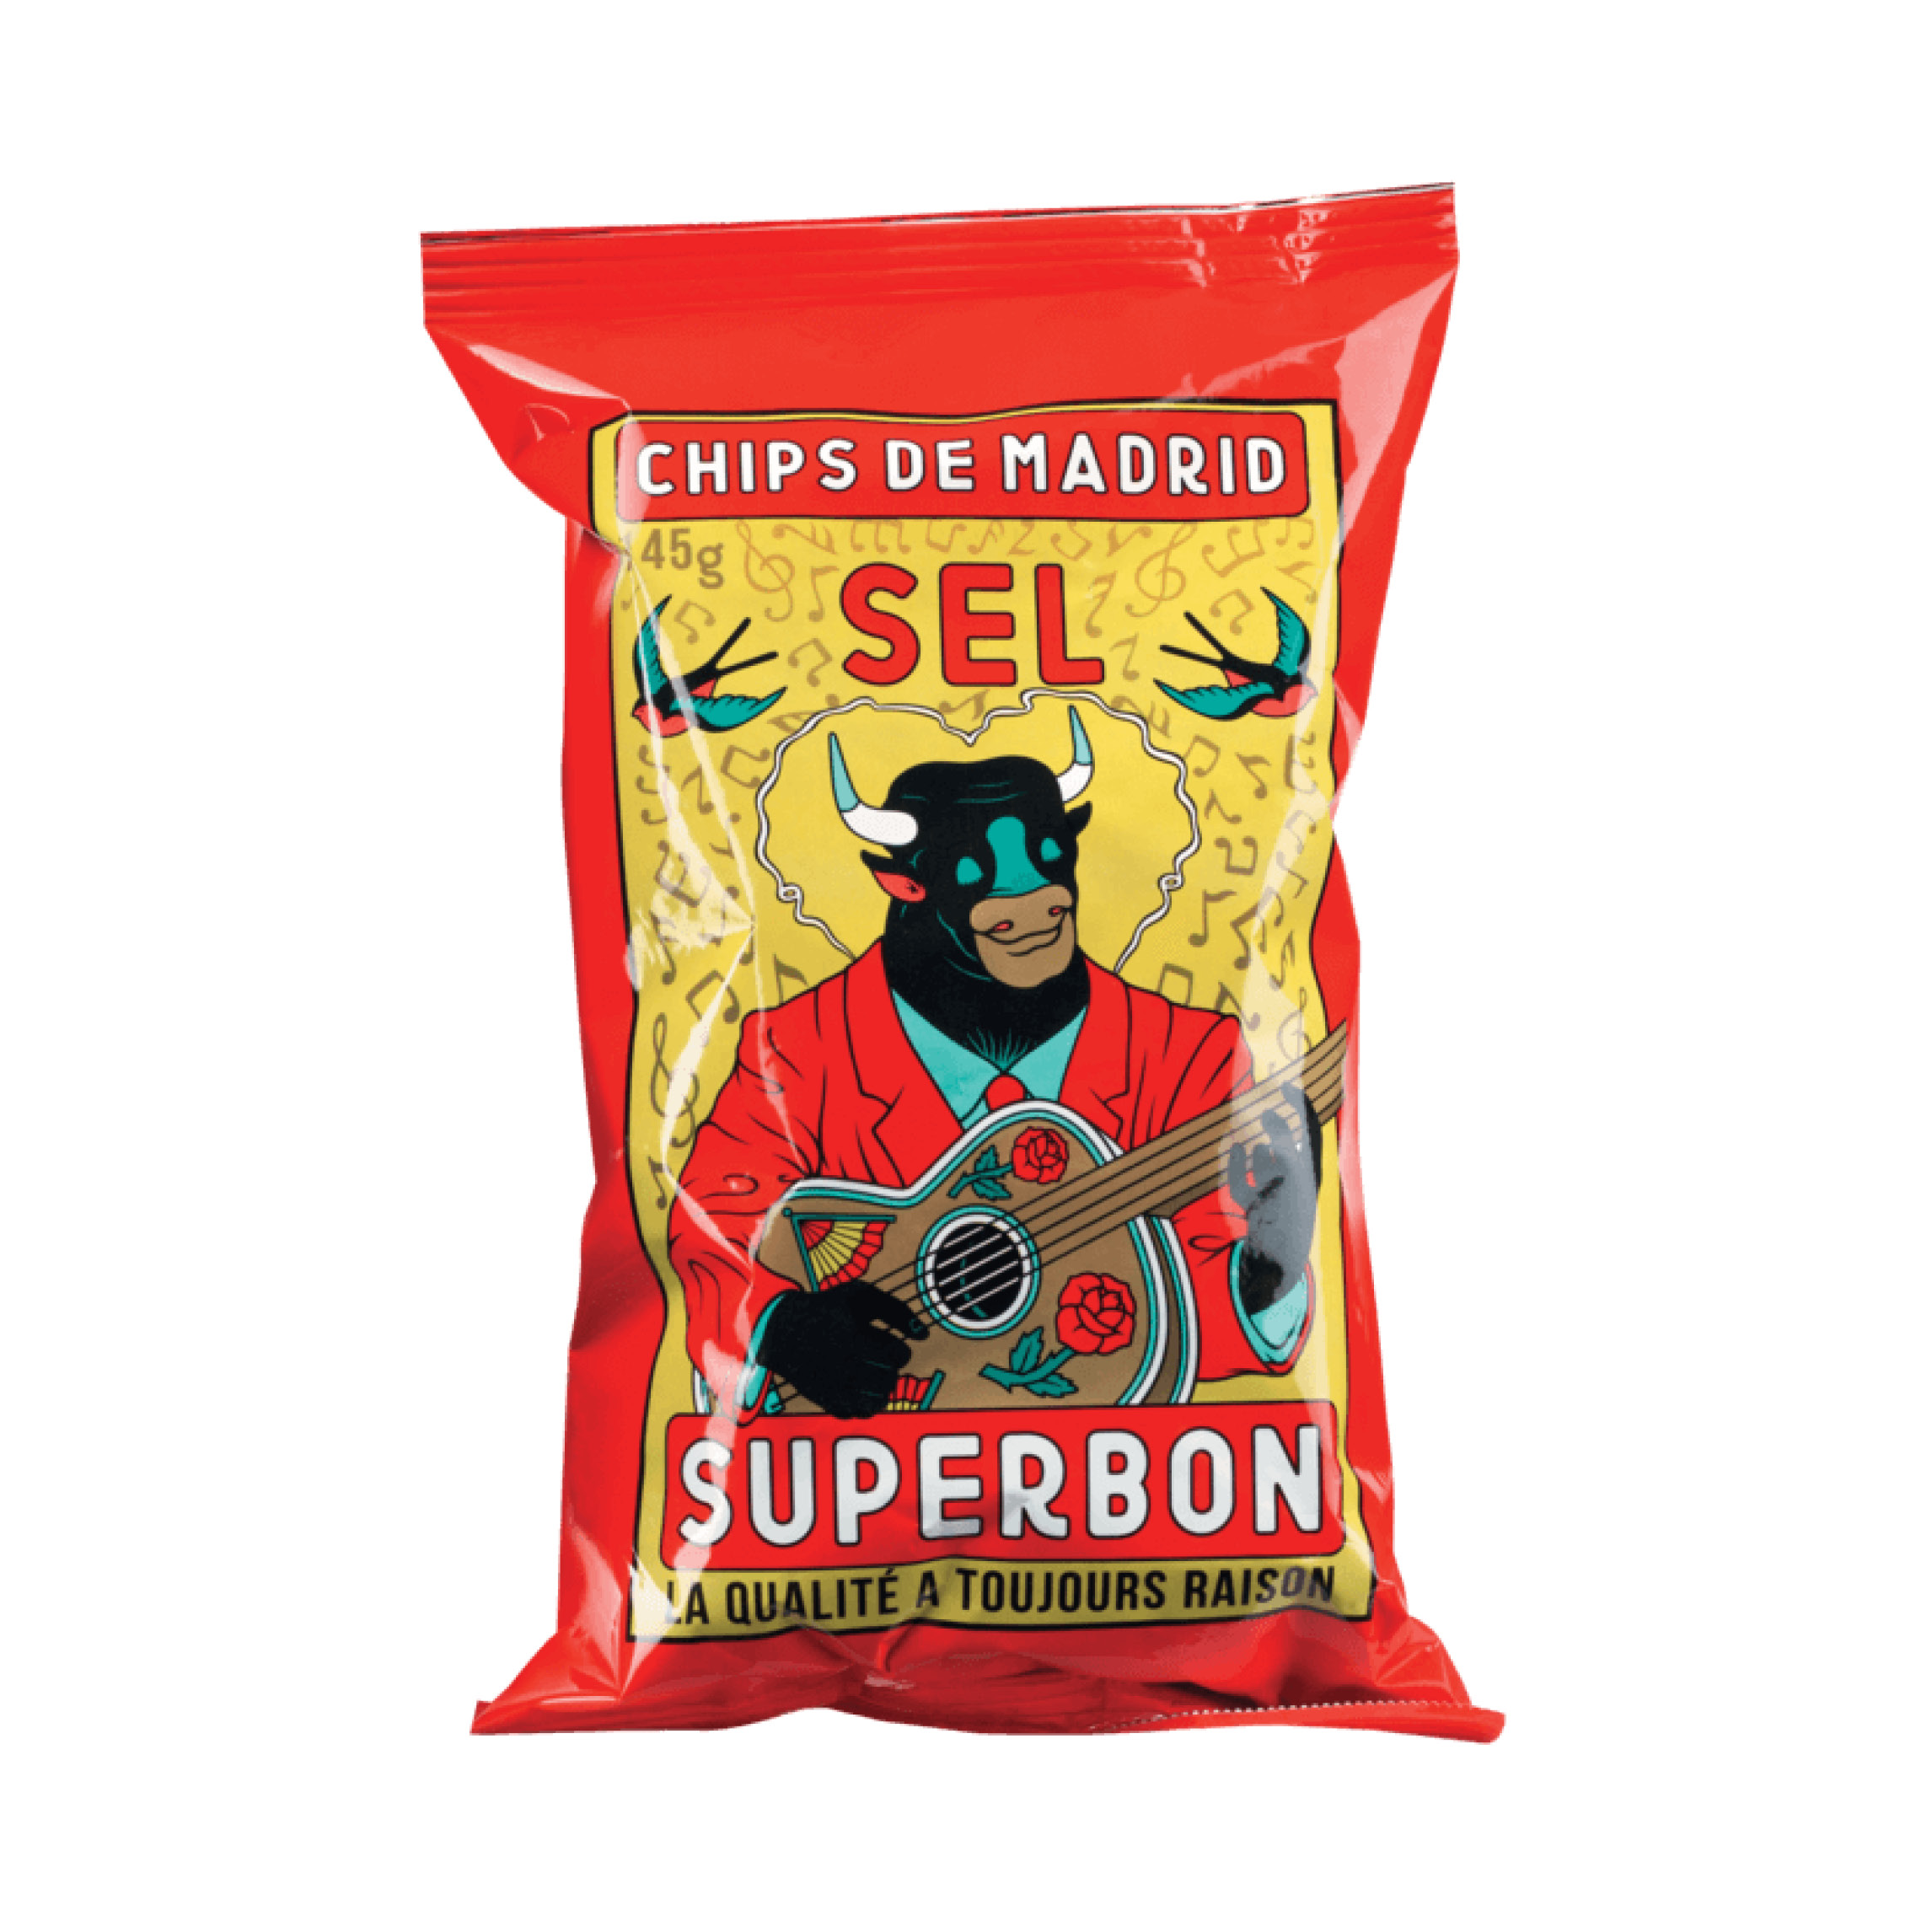 Chips de Madrid Sel X Superbon